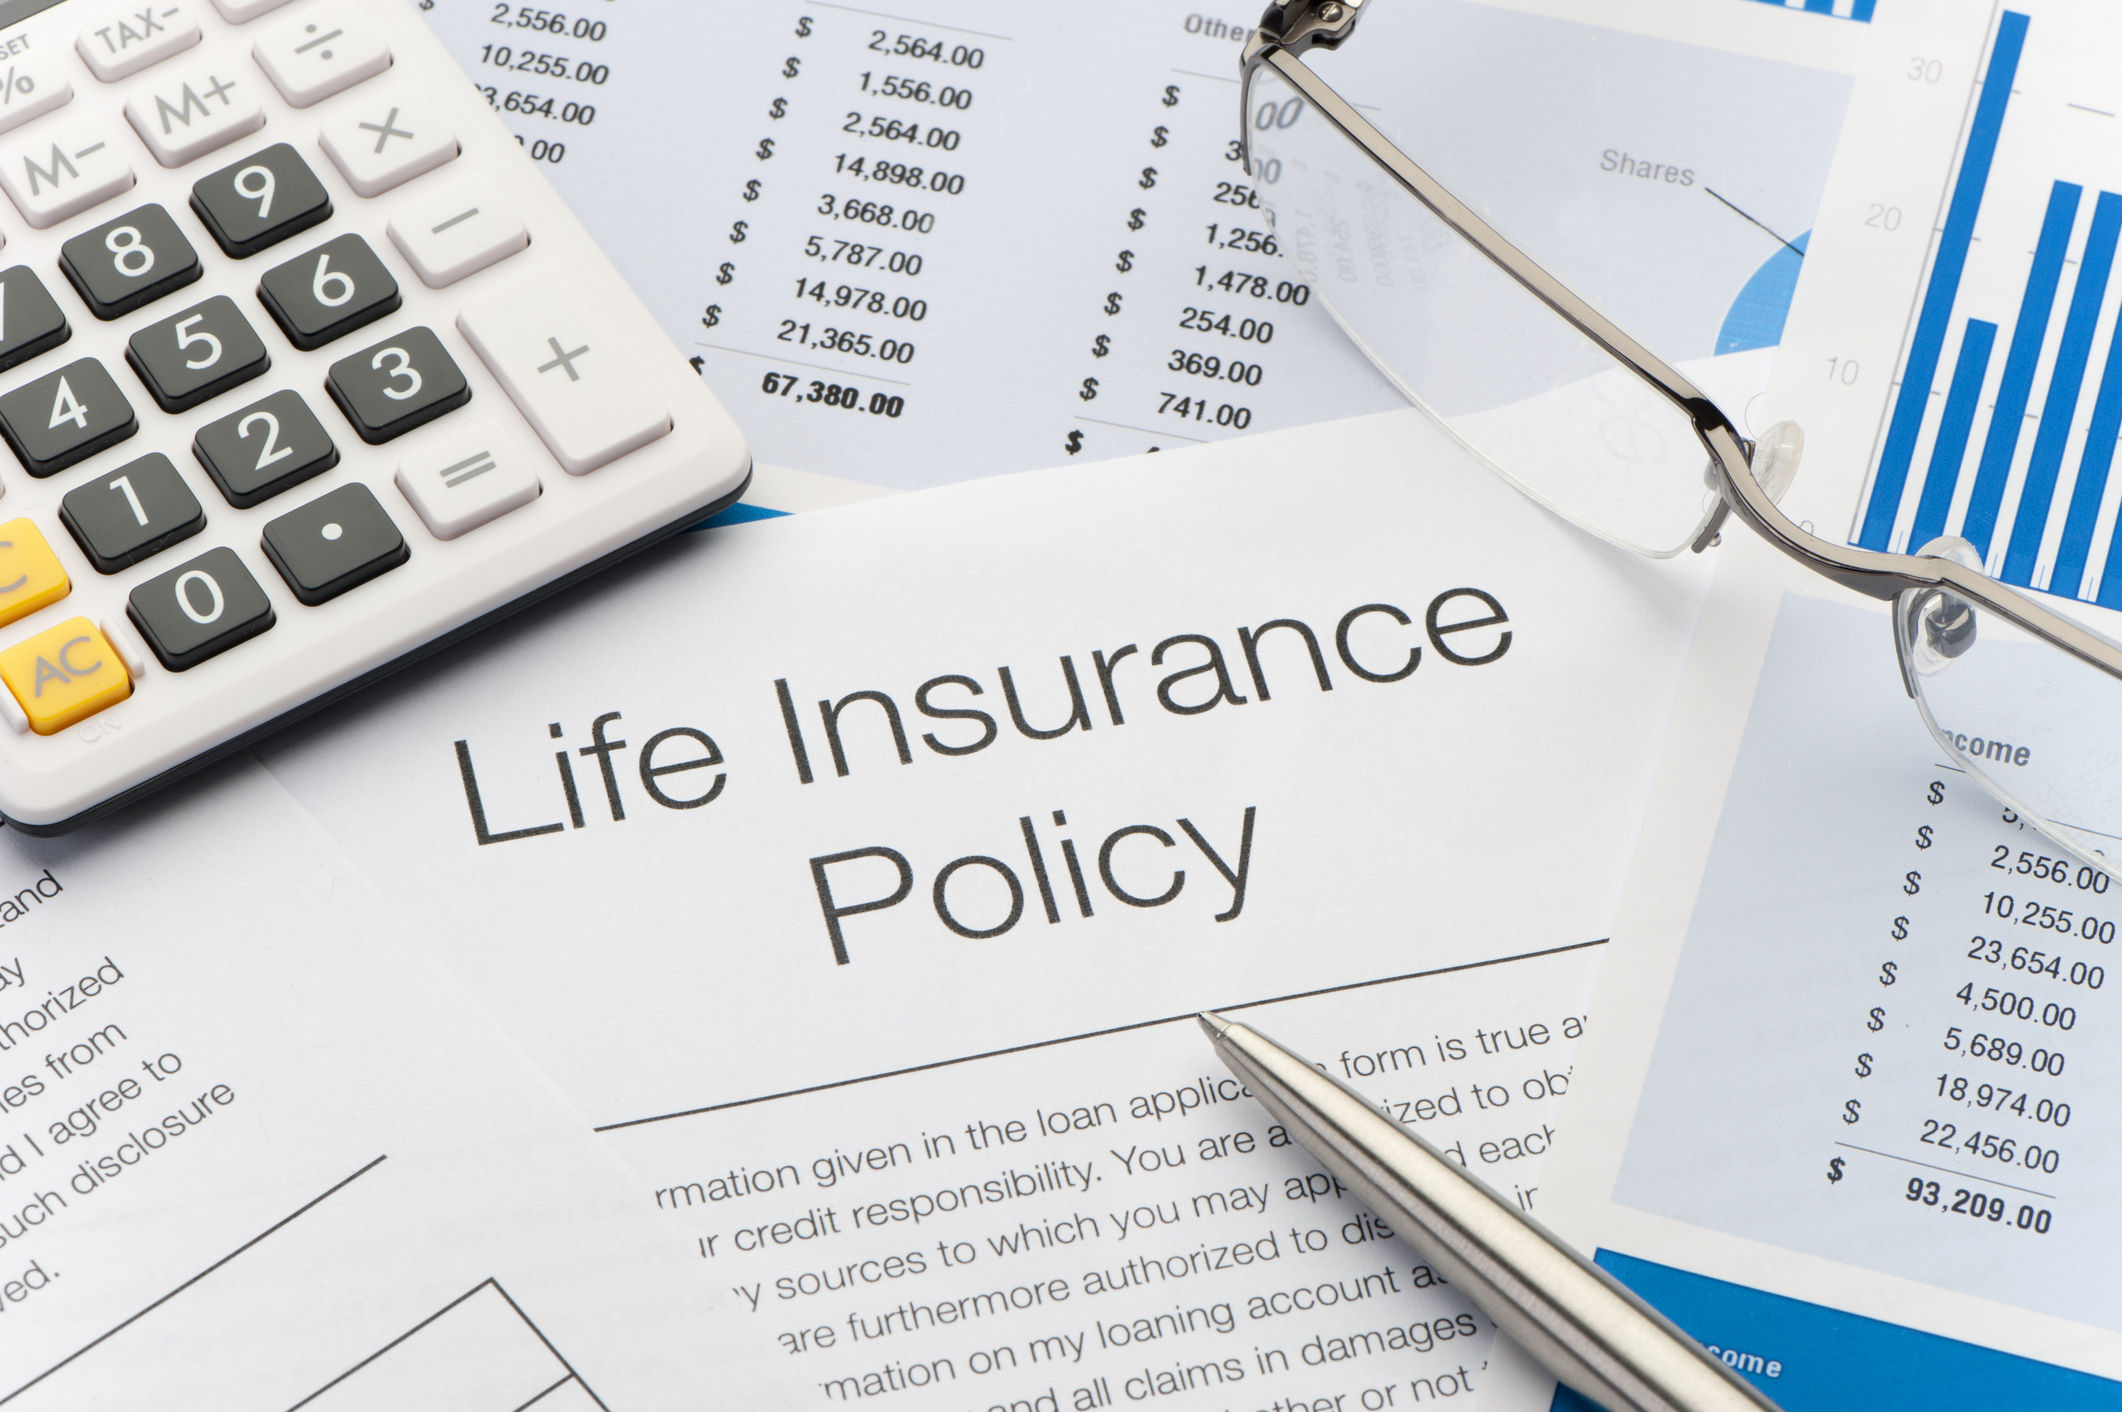 How to Locate a Missing Life Insurance Policy